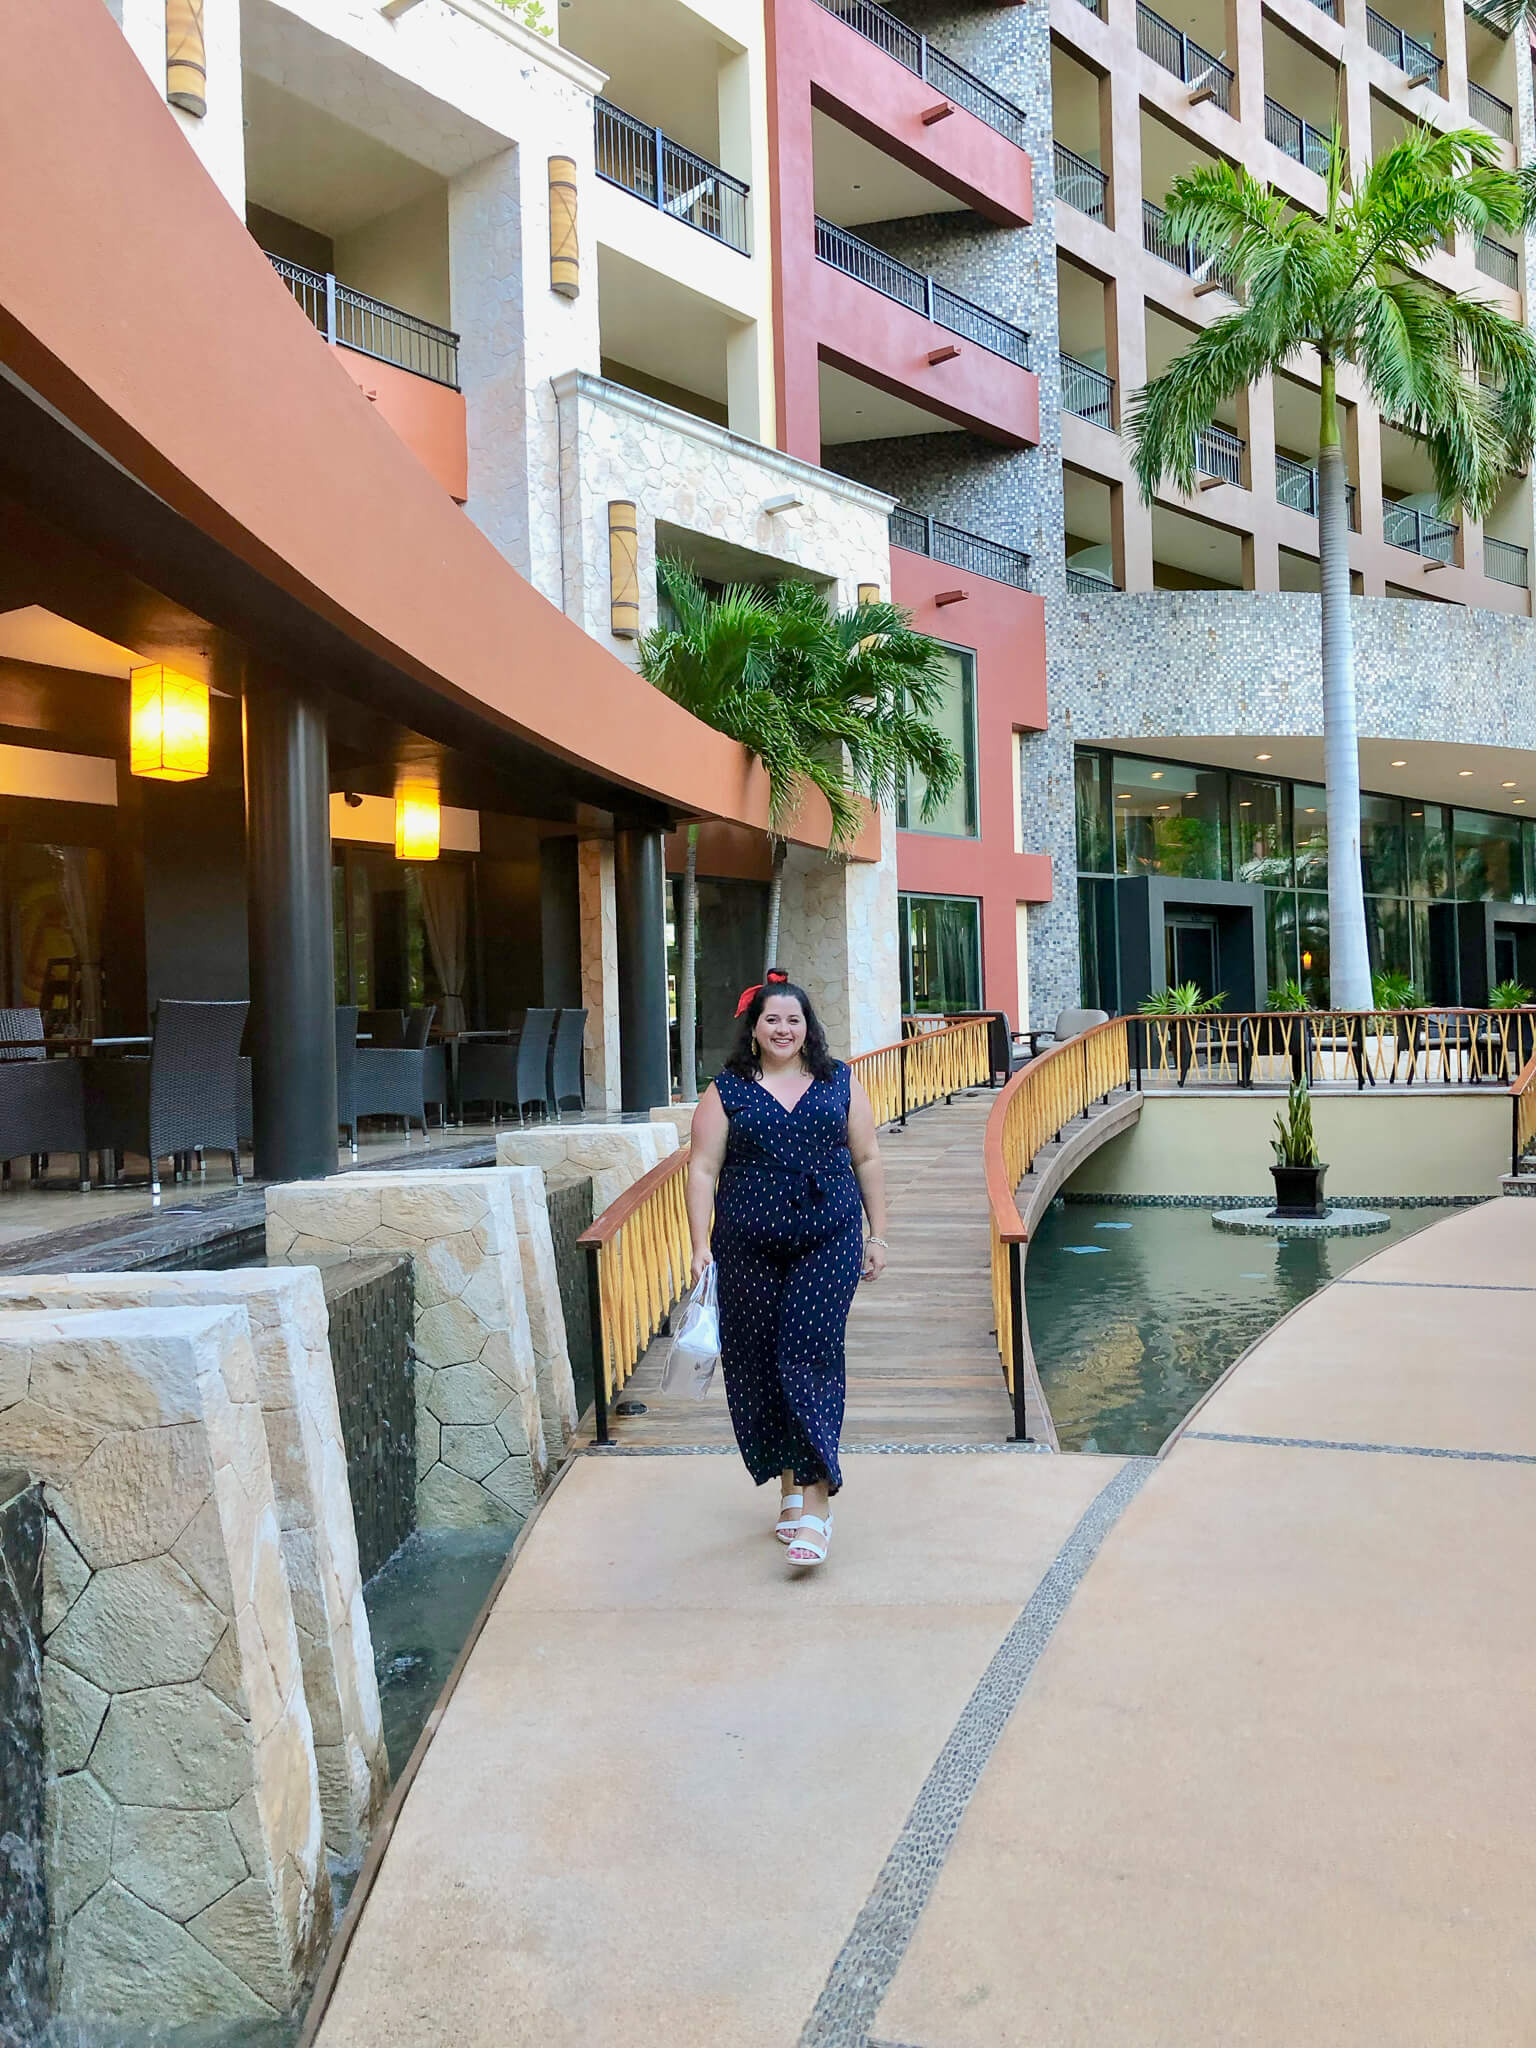 An honest review of the Villa del Palmar Cancun including whether or not you should do the All Inclusive or A la Carte meal packages